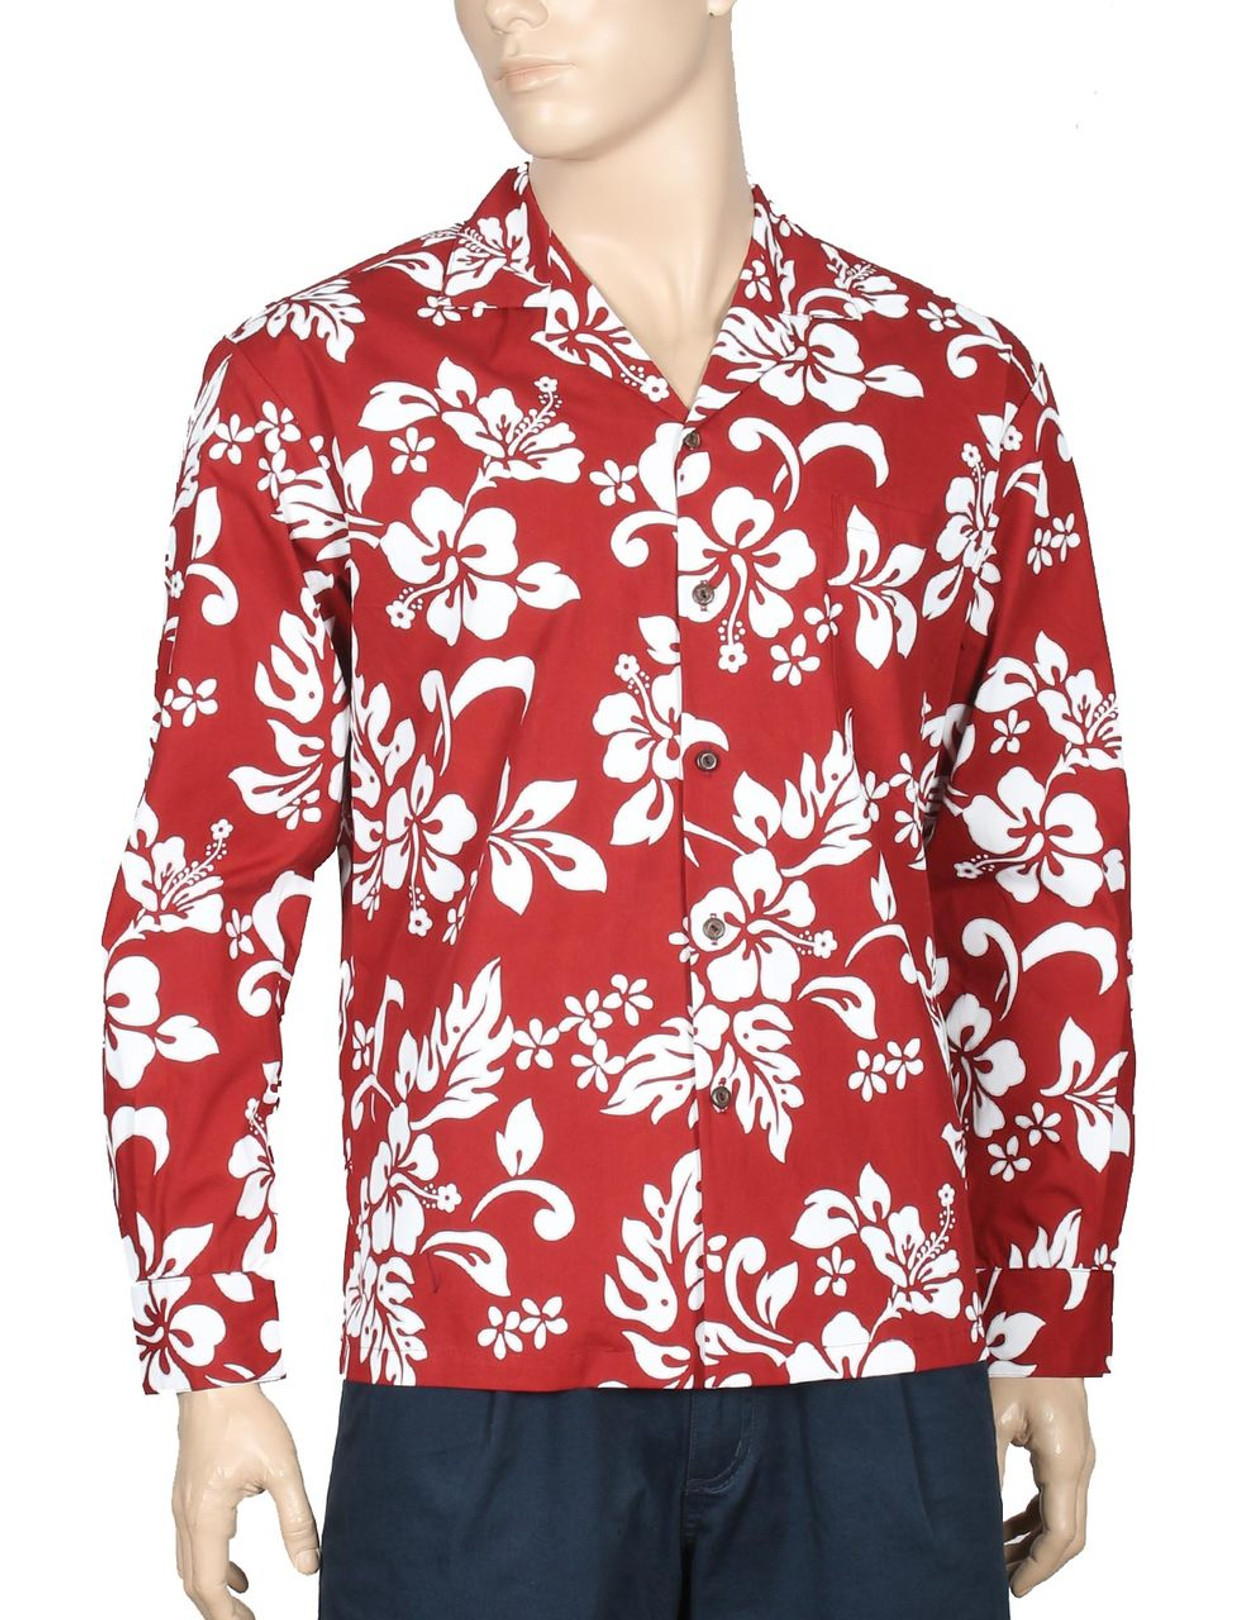 37195af3 Island Hibiscus Long Sleeve Aloha Shirt Red 100% Cotton Fabric Open Collar  Modern Fit Coconut